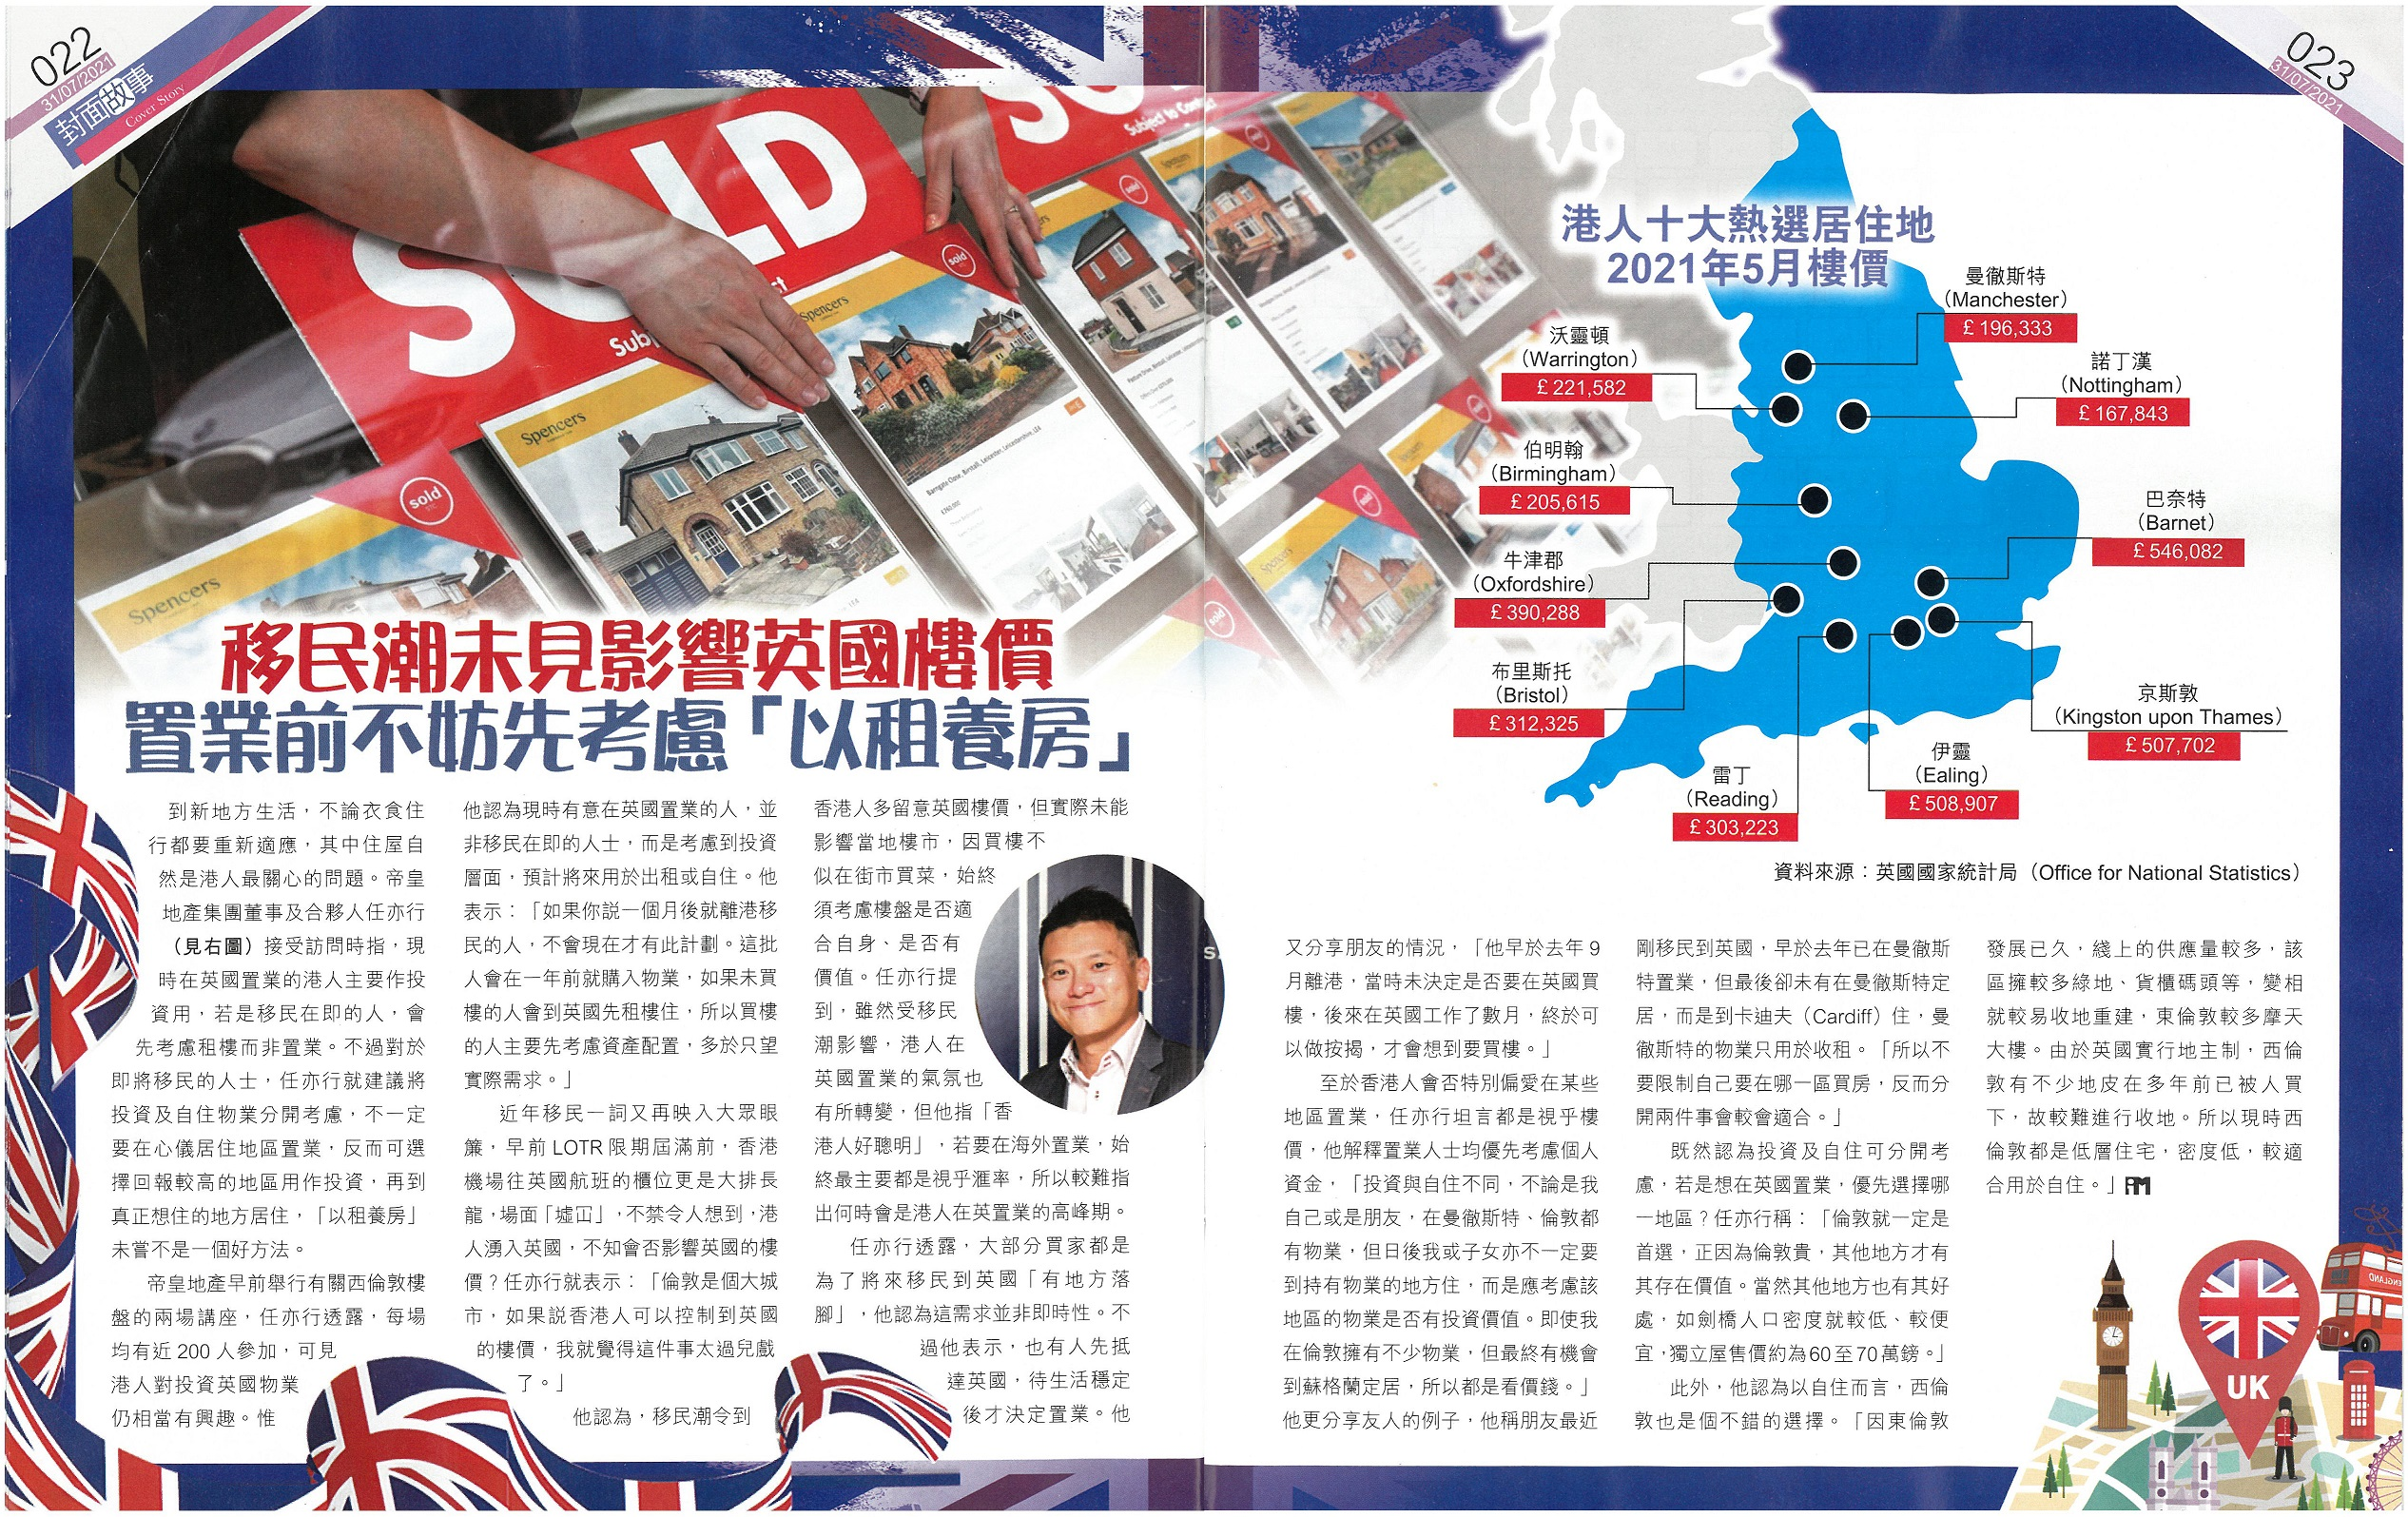 IMoney Interview Mr. Ivan Yim on UK Property Market Trends and Insights